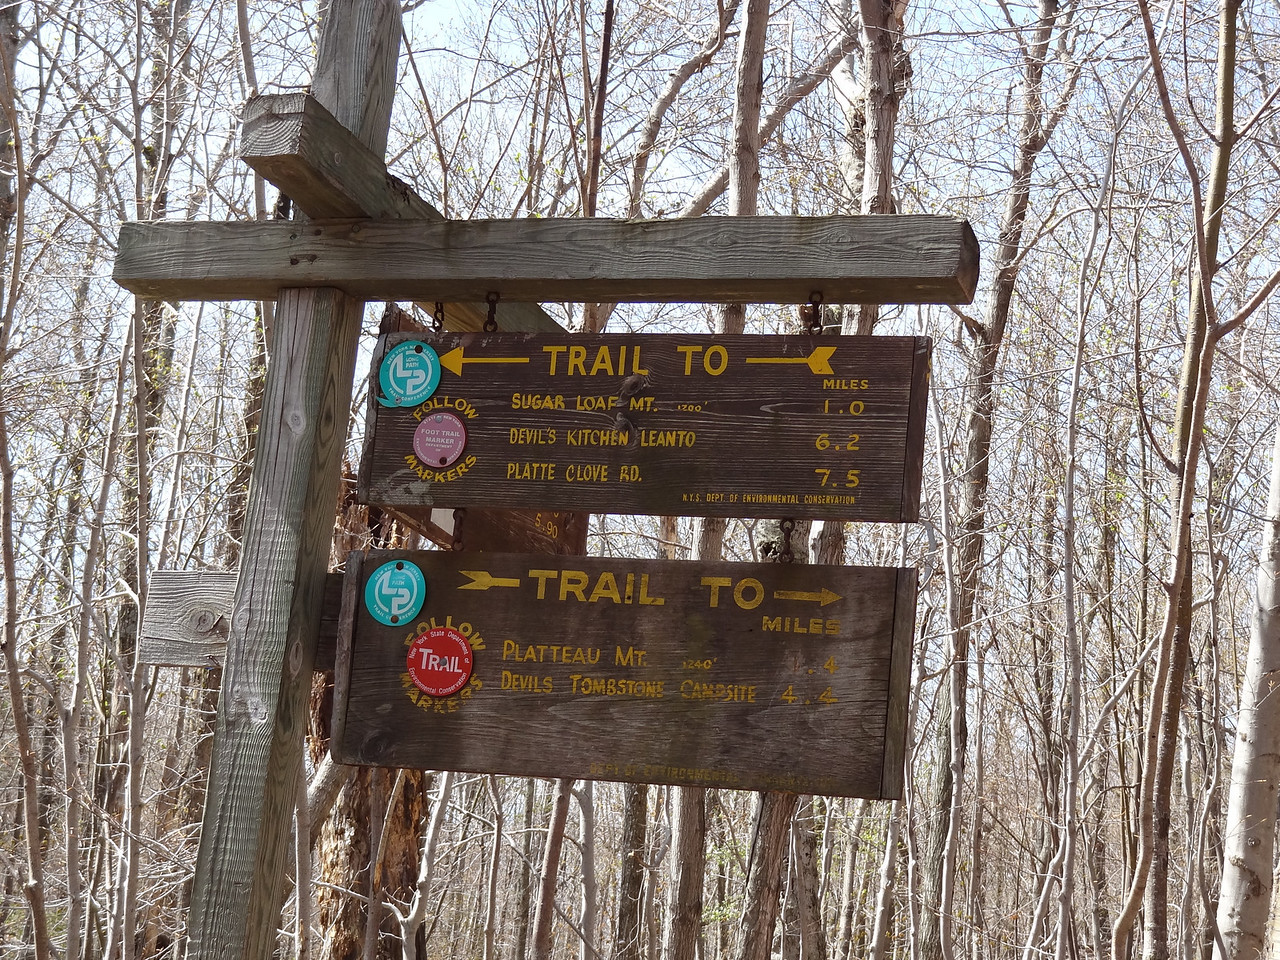 1240 more feet to go. My map says 0.8 miles to the summit but the sign says 0.4 miles. Since they spelled Plateau wrong, I went with the map. However it was definitely more than 0.8 miles, more like the 1.4 miles scratched into the sign. I was a sweaty mess within the first 500 feet vertical.<br /> <br /> Initially, I planned to do Sugarloaf Mtn as well since I was at altitude, but I was whipped. Will have to bring the dog again and do the same trip, this time with an official dog sleeping bag and dog hiking mattress. (Which they do make!)